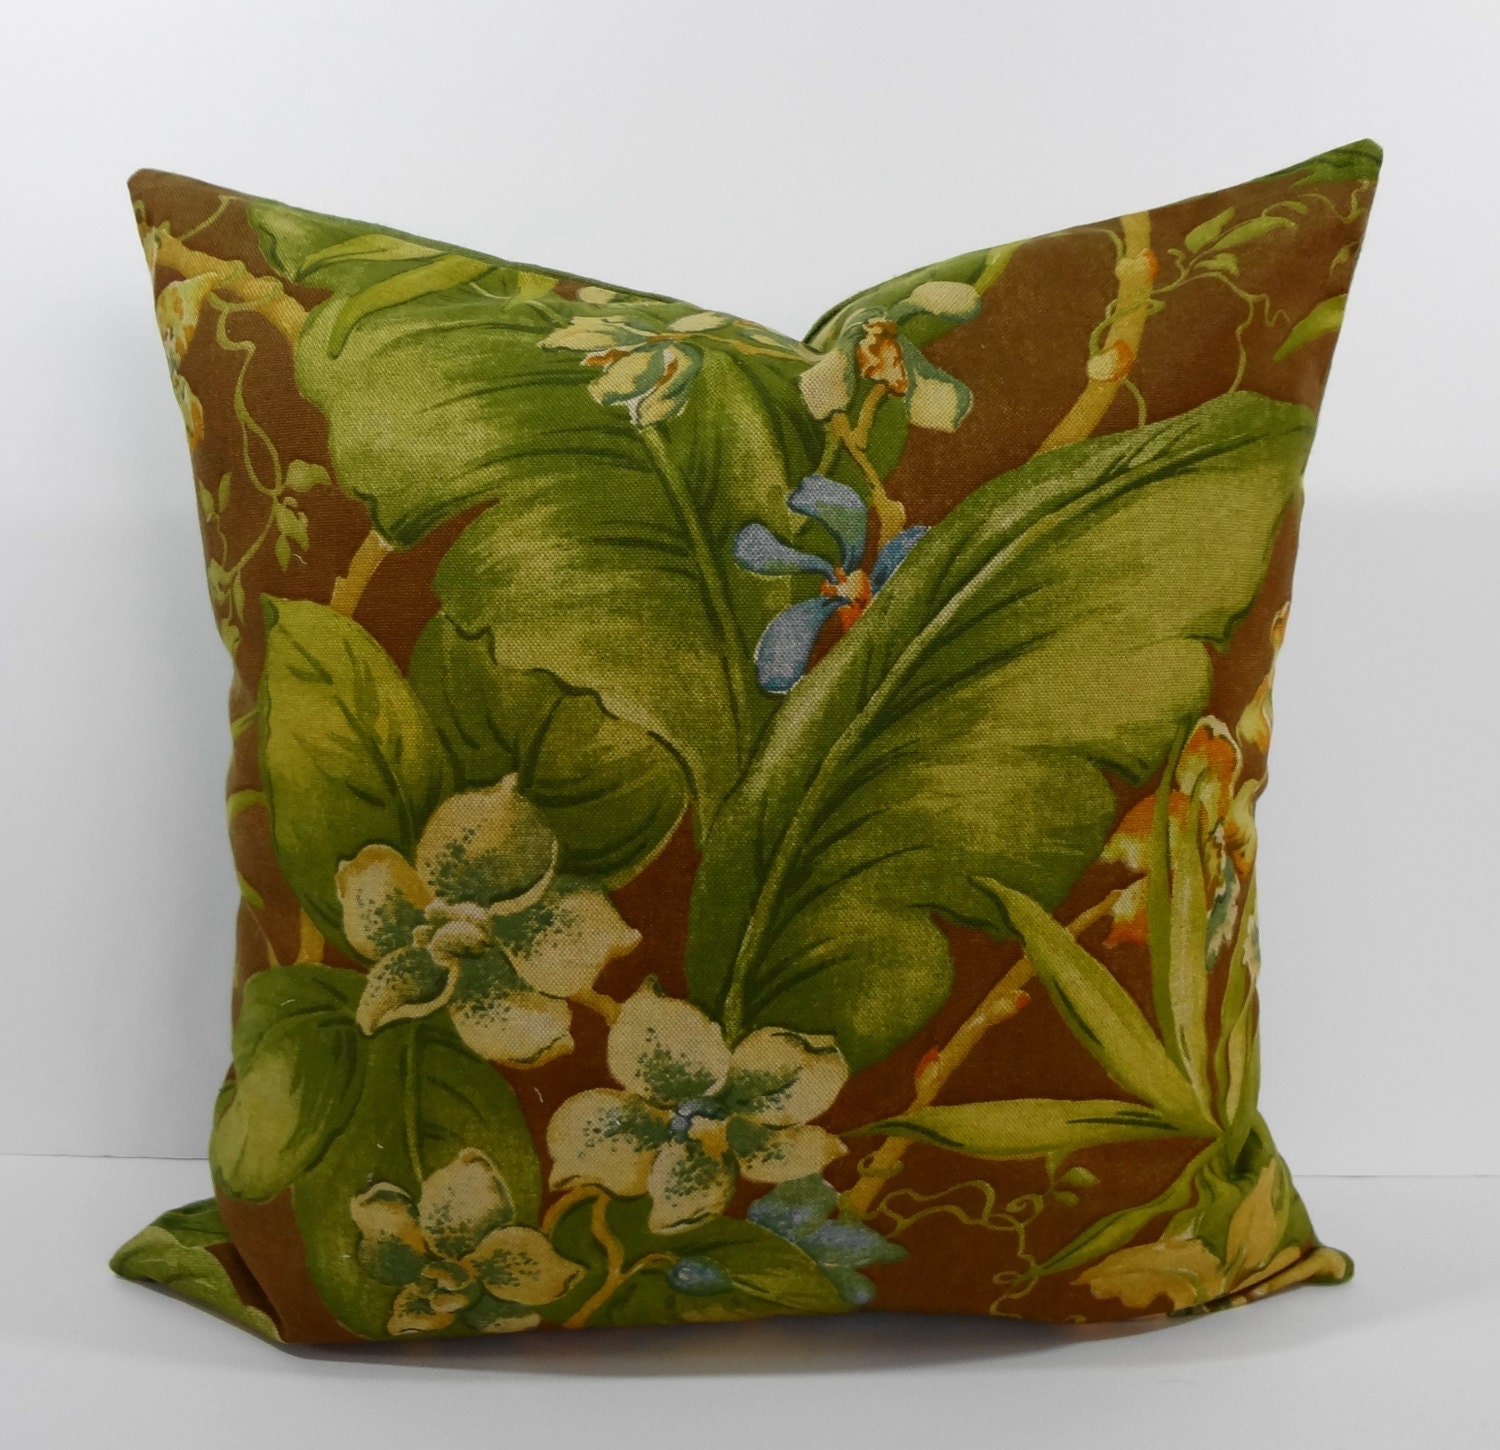 Decorative Pillows Tropical : Tommy Bahama Designer Tropical Print Pillow Cover Decorative